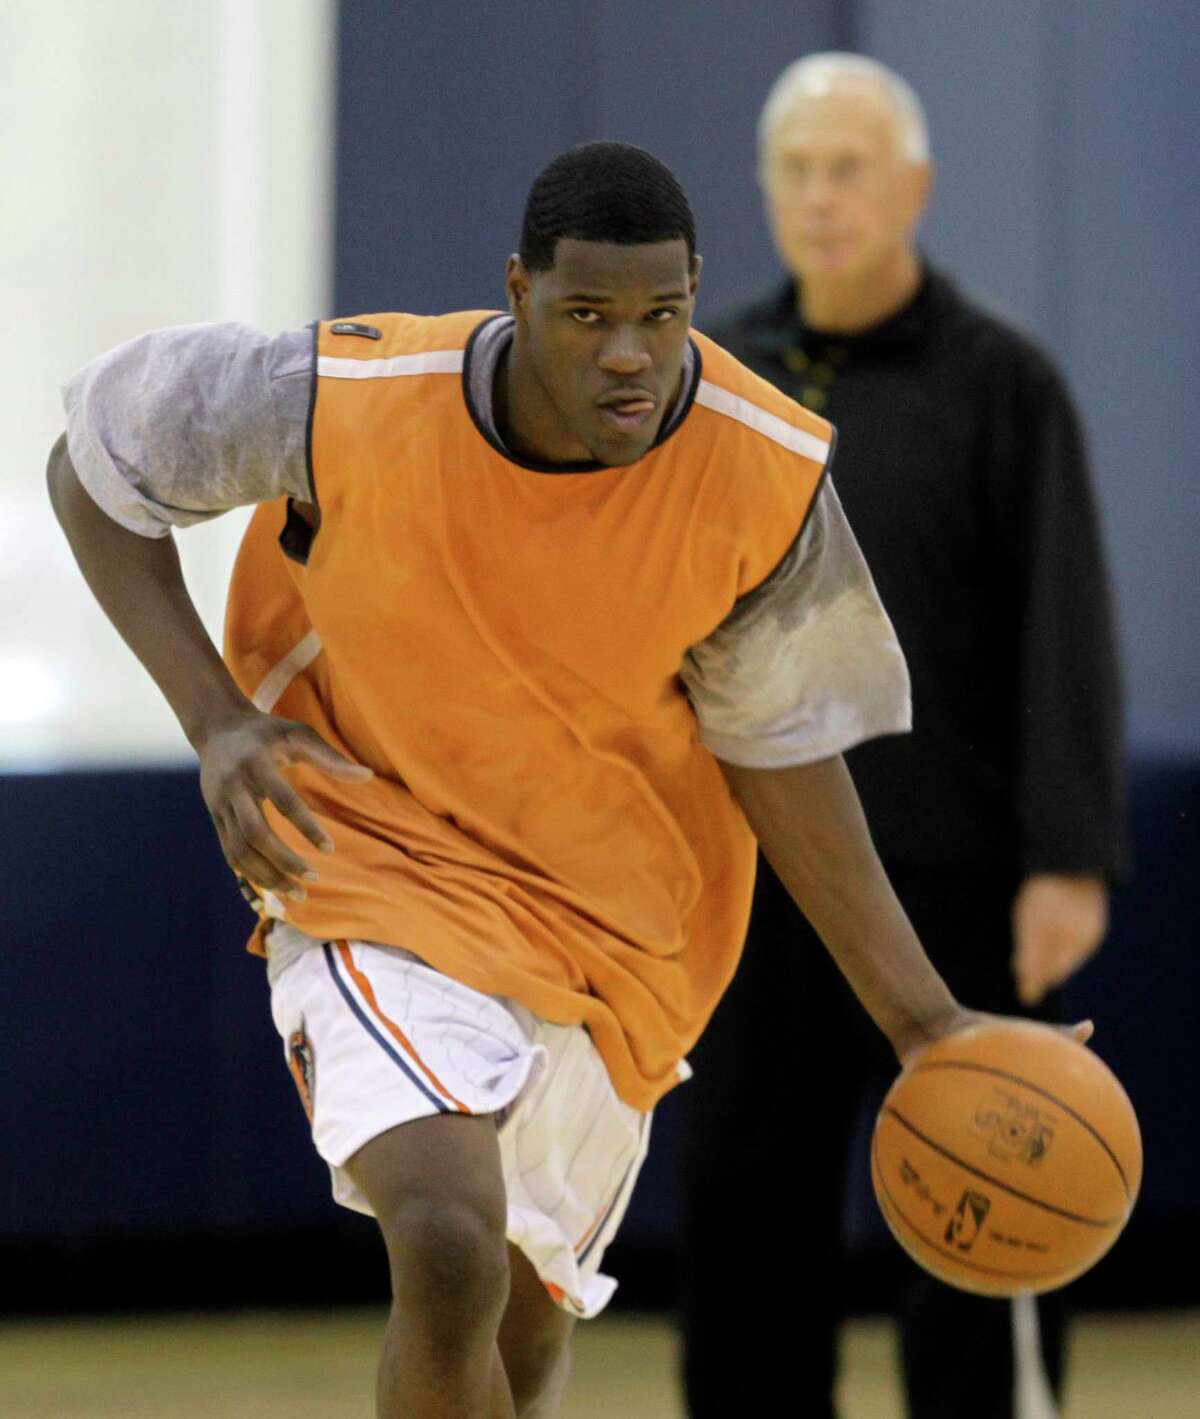 Latavious Williams brings the ball up the court during a pre-NBA draft workout for the Charlotte Bobcats as their coach, Larry Brown, looks on in June 2010. Williams was automatically eligible for the draft after playing the previous season, his first out of high school, in the D League for Tulsa.